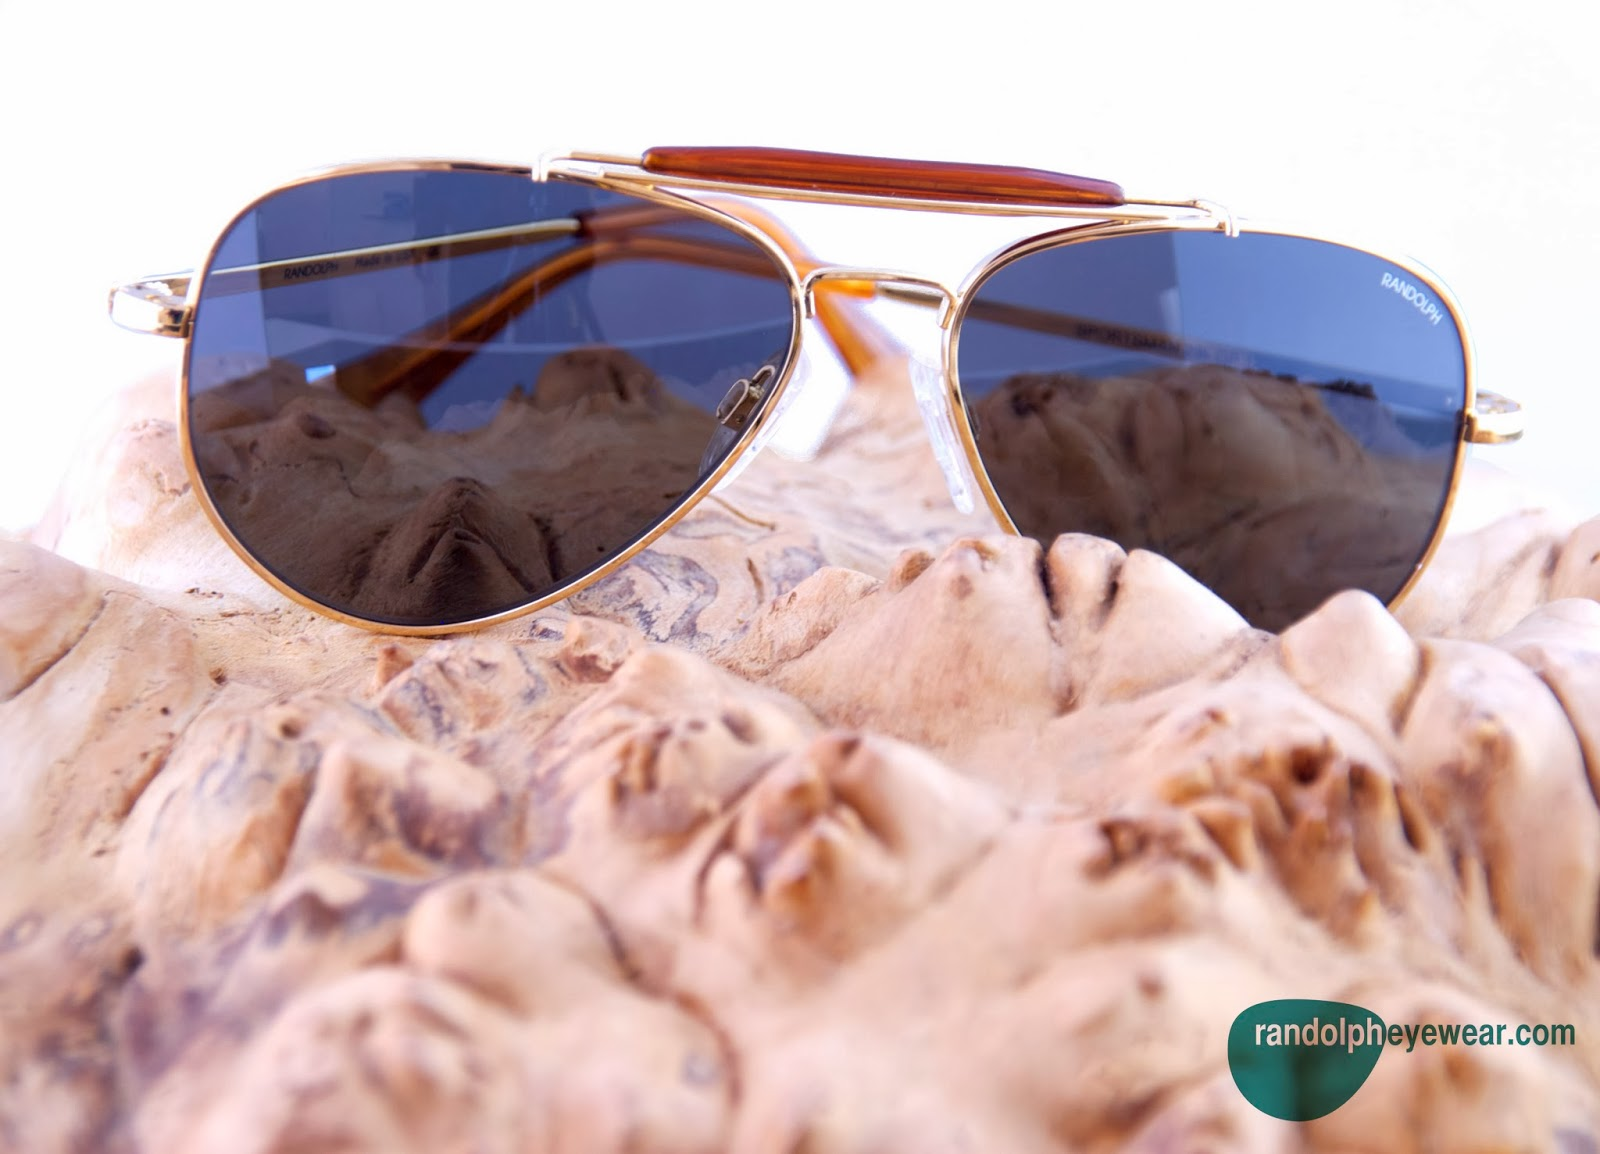 b132659e218 Randolph Eyewear makes their sunglass lenses with Glass or Polycarbonate  options. They come in many different colors